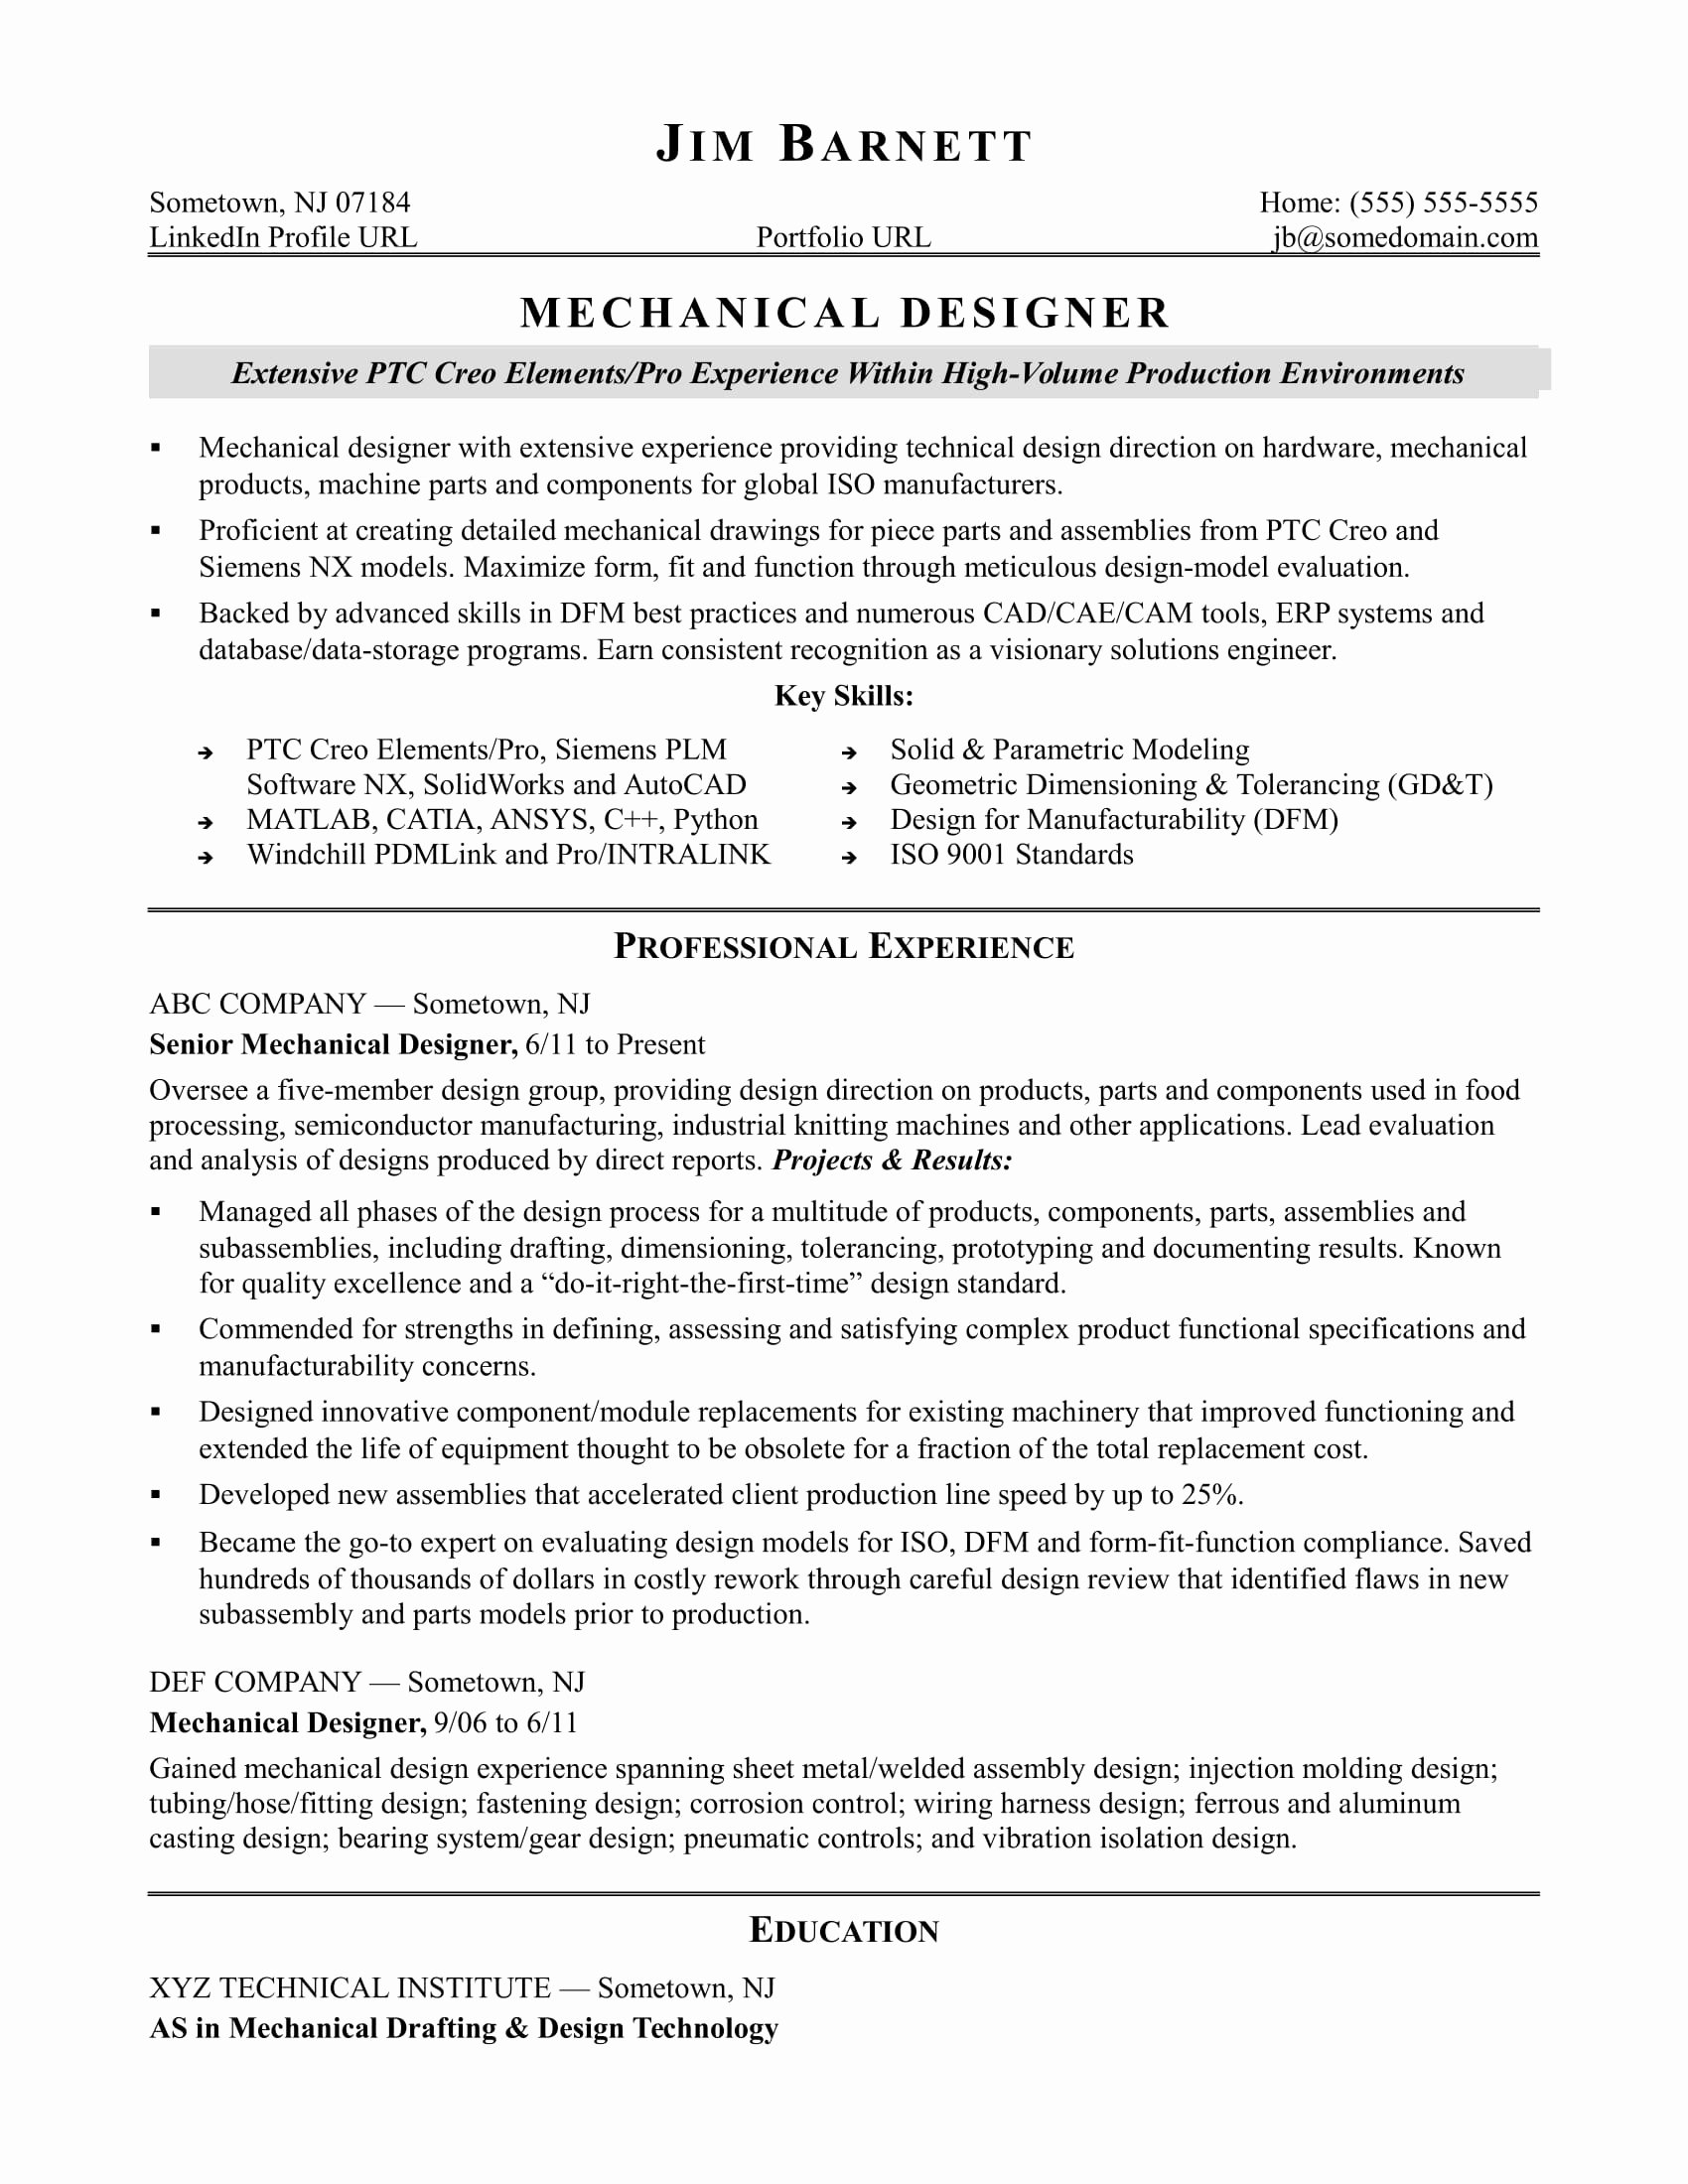 Mechanical Engineer Resume Sample Beautiful Sample Resume for An Experienced Mechanical Designer